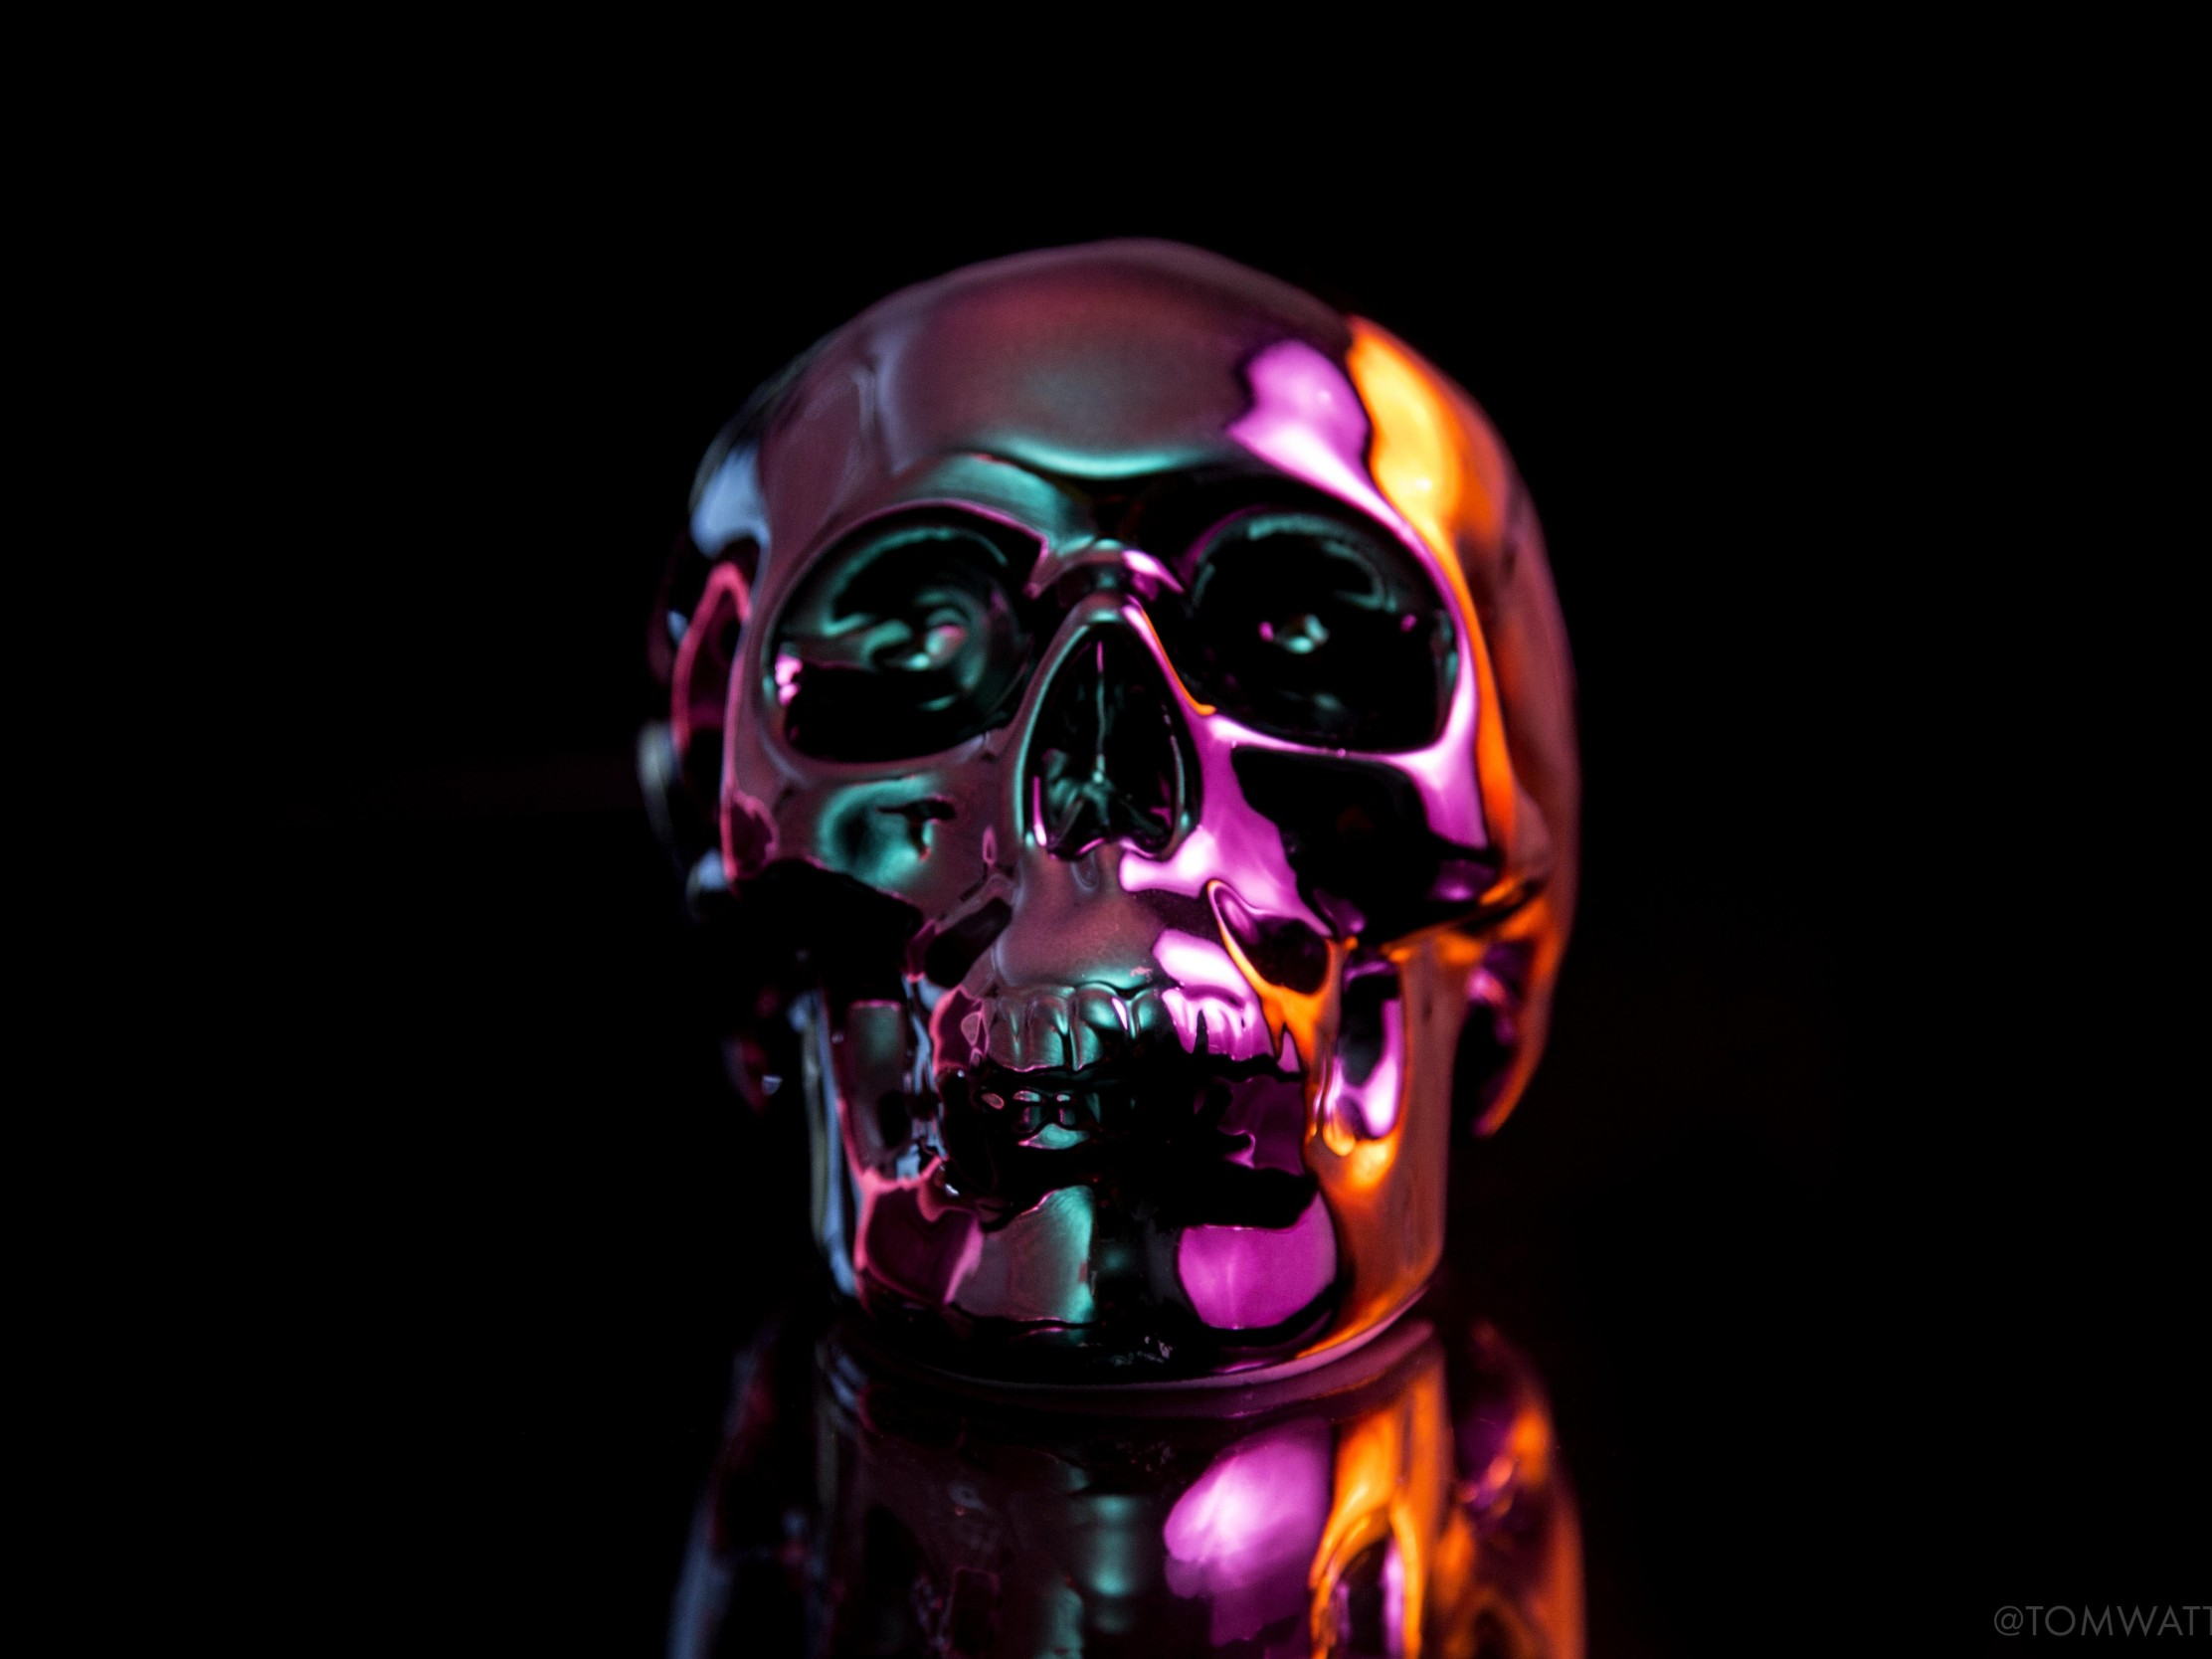 Oil Slick Skull 4K Wallpaper IPad Pro  The Hot Desktop Wallpapers And Backgrounds